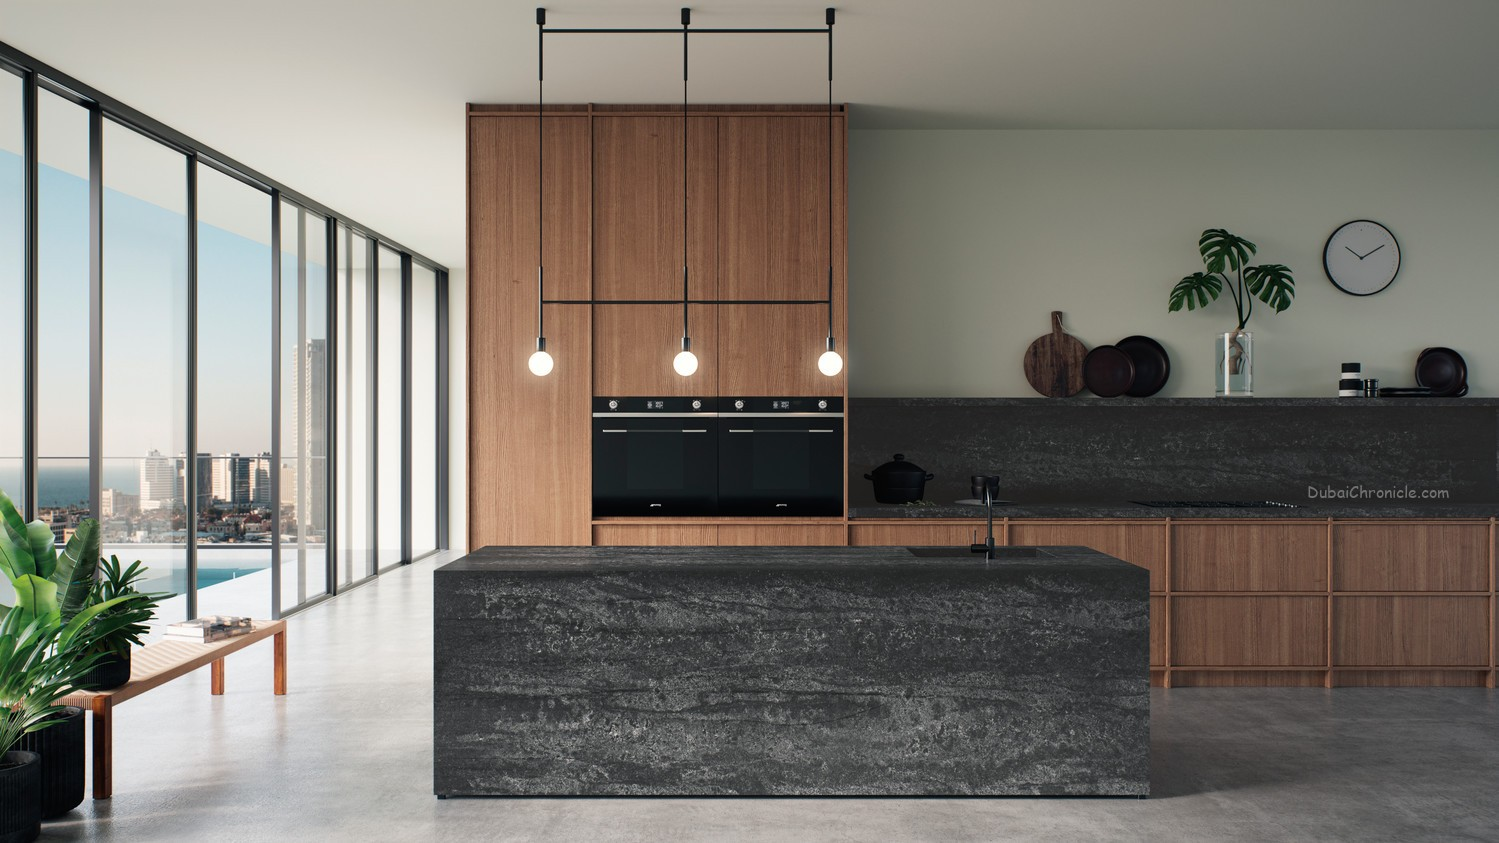 Glaze Granite & Marble,the UAE's largest marble importer, has been appointed as a distributor ofCaesarstoneQUARTZsurfaces.